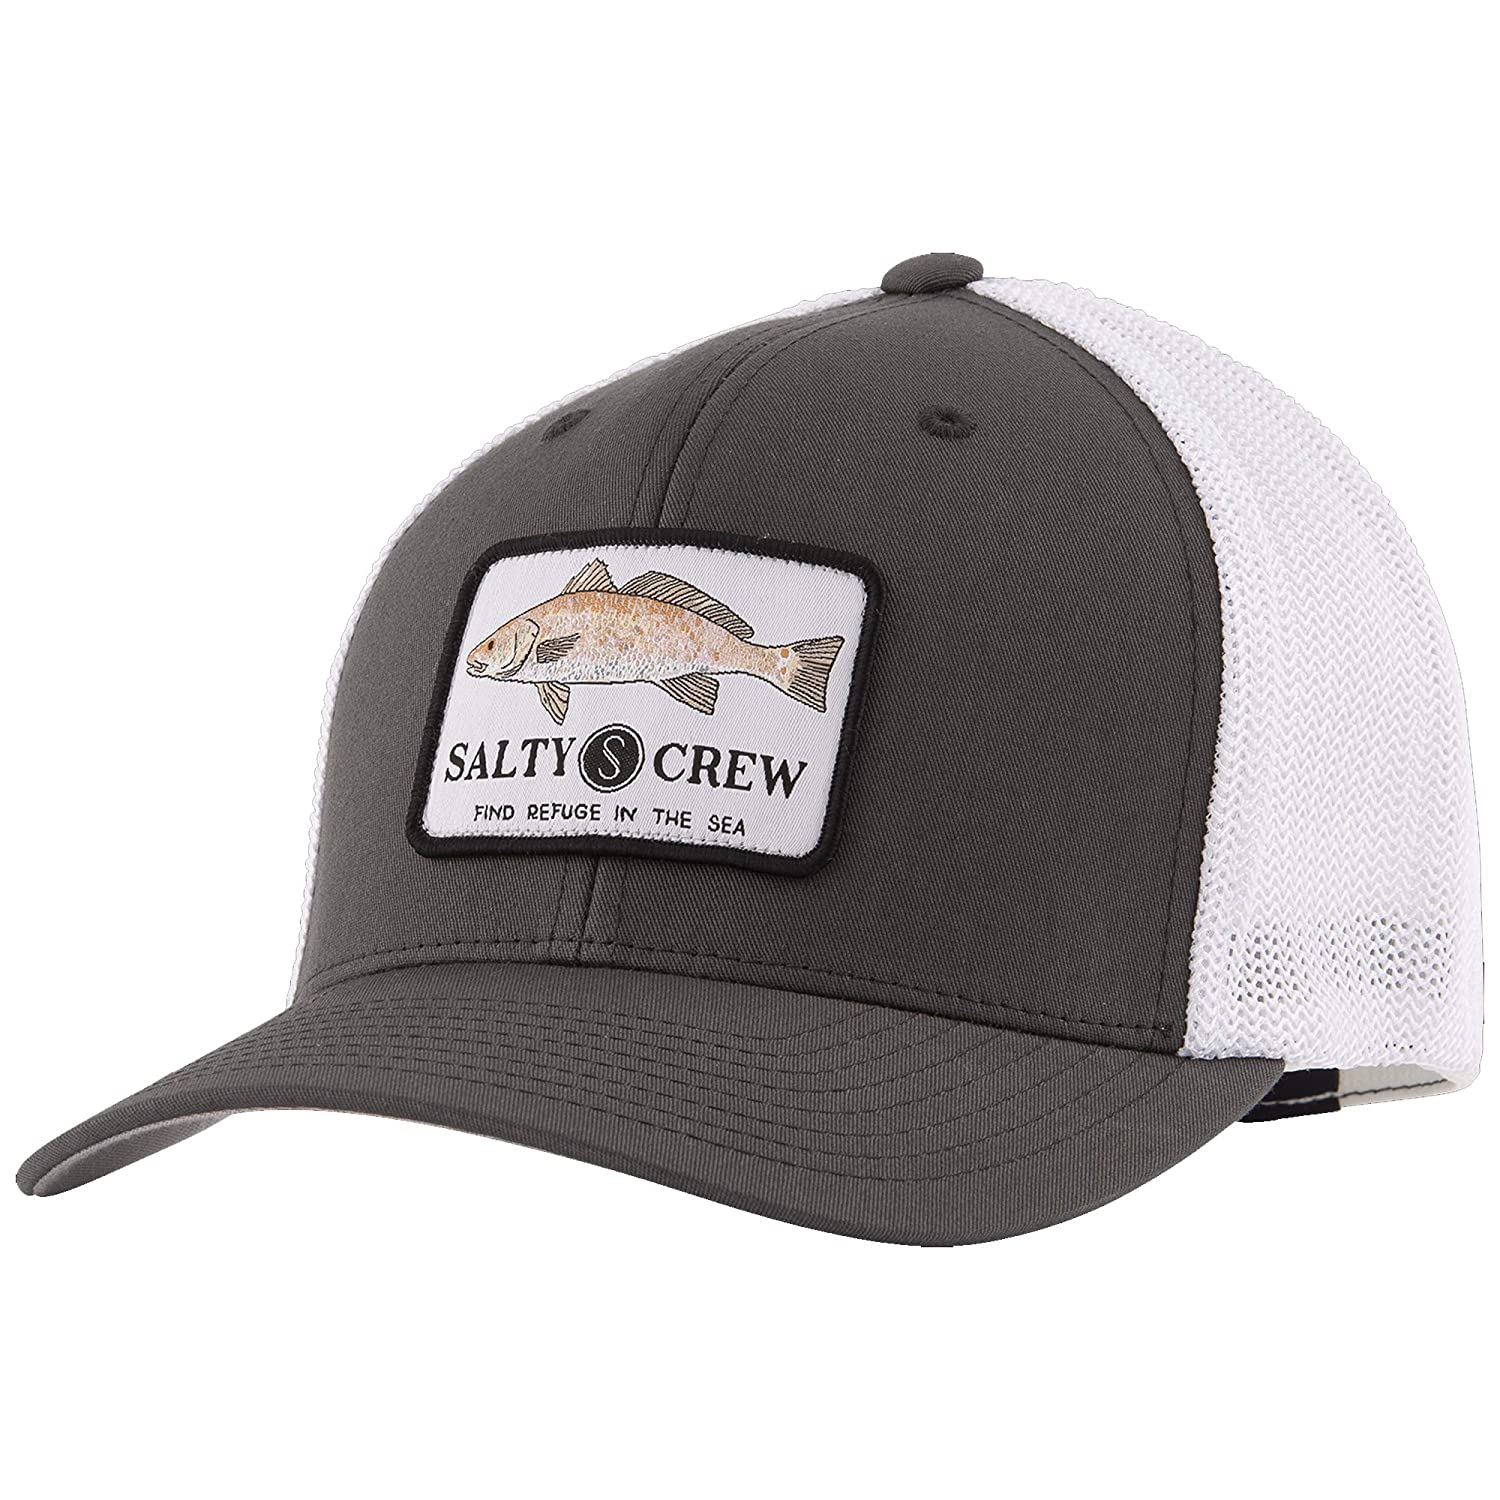 Salty Crew Spot Tail Retro Trucker